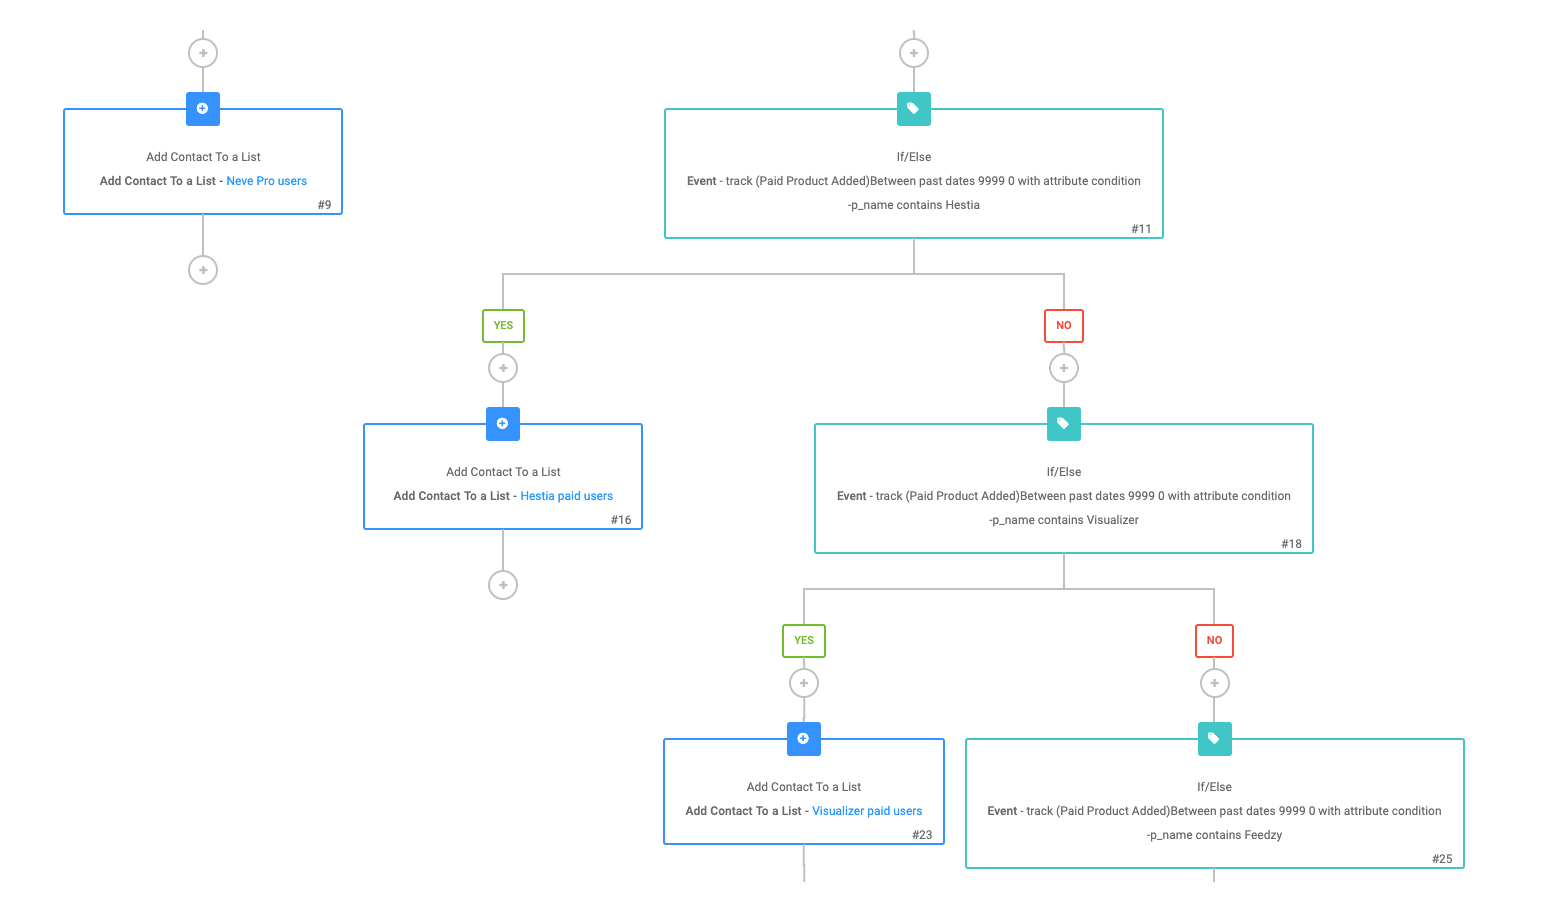 Using a workflow to add users to lists based on their purchase